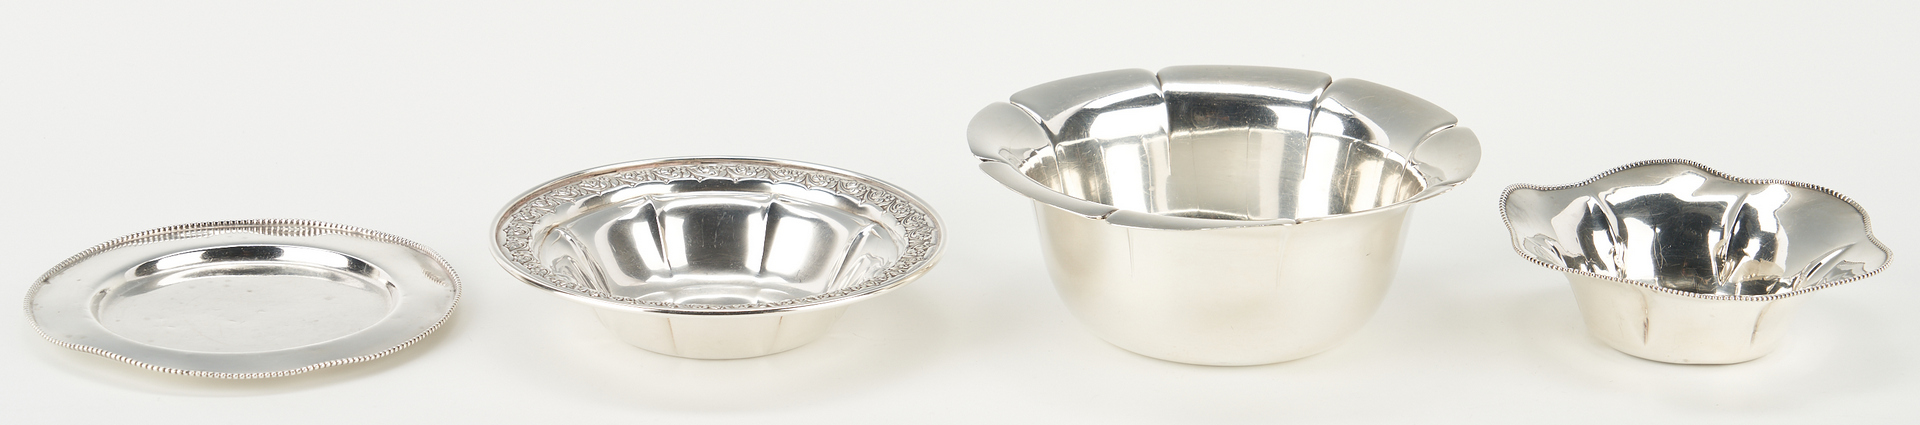 Lot 1235: English & American Sterling Caster, Bowls and Spoon, 7 items